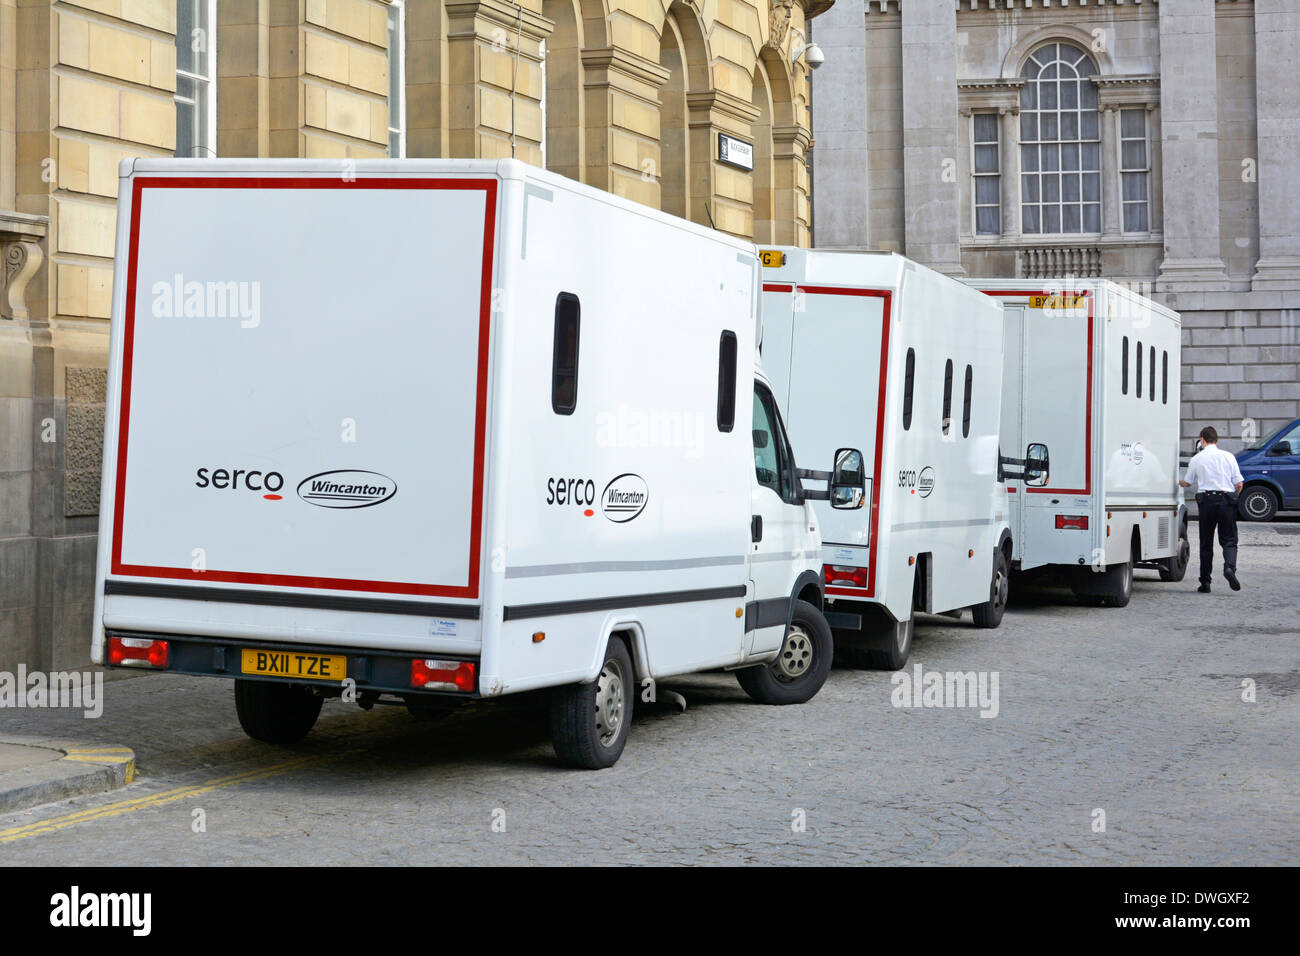 3 joint venture Serco (outsourcing business) & Wincanton prisoner vans parked outside rear of City of London - Stock Image